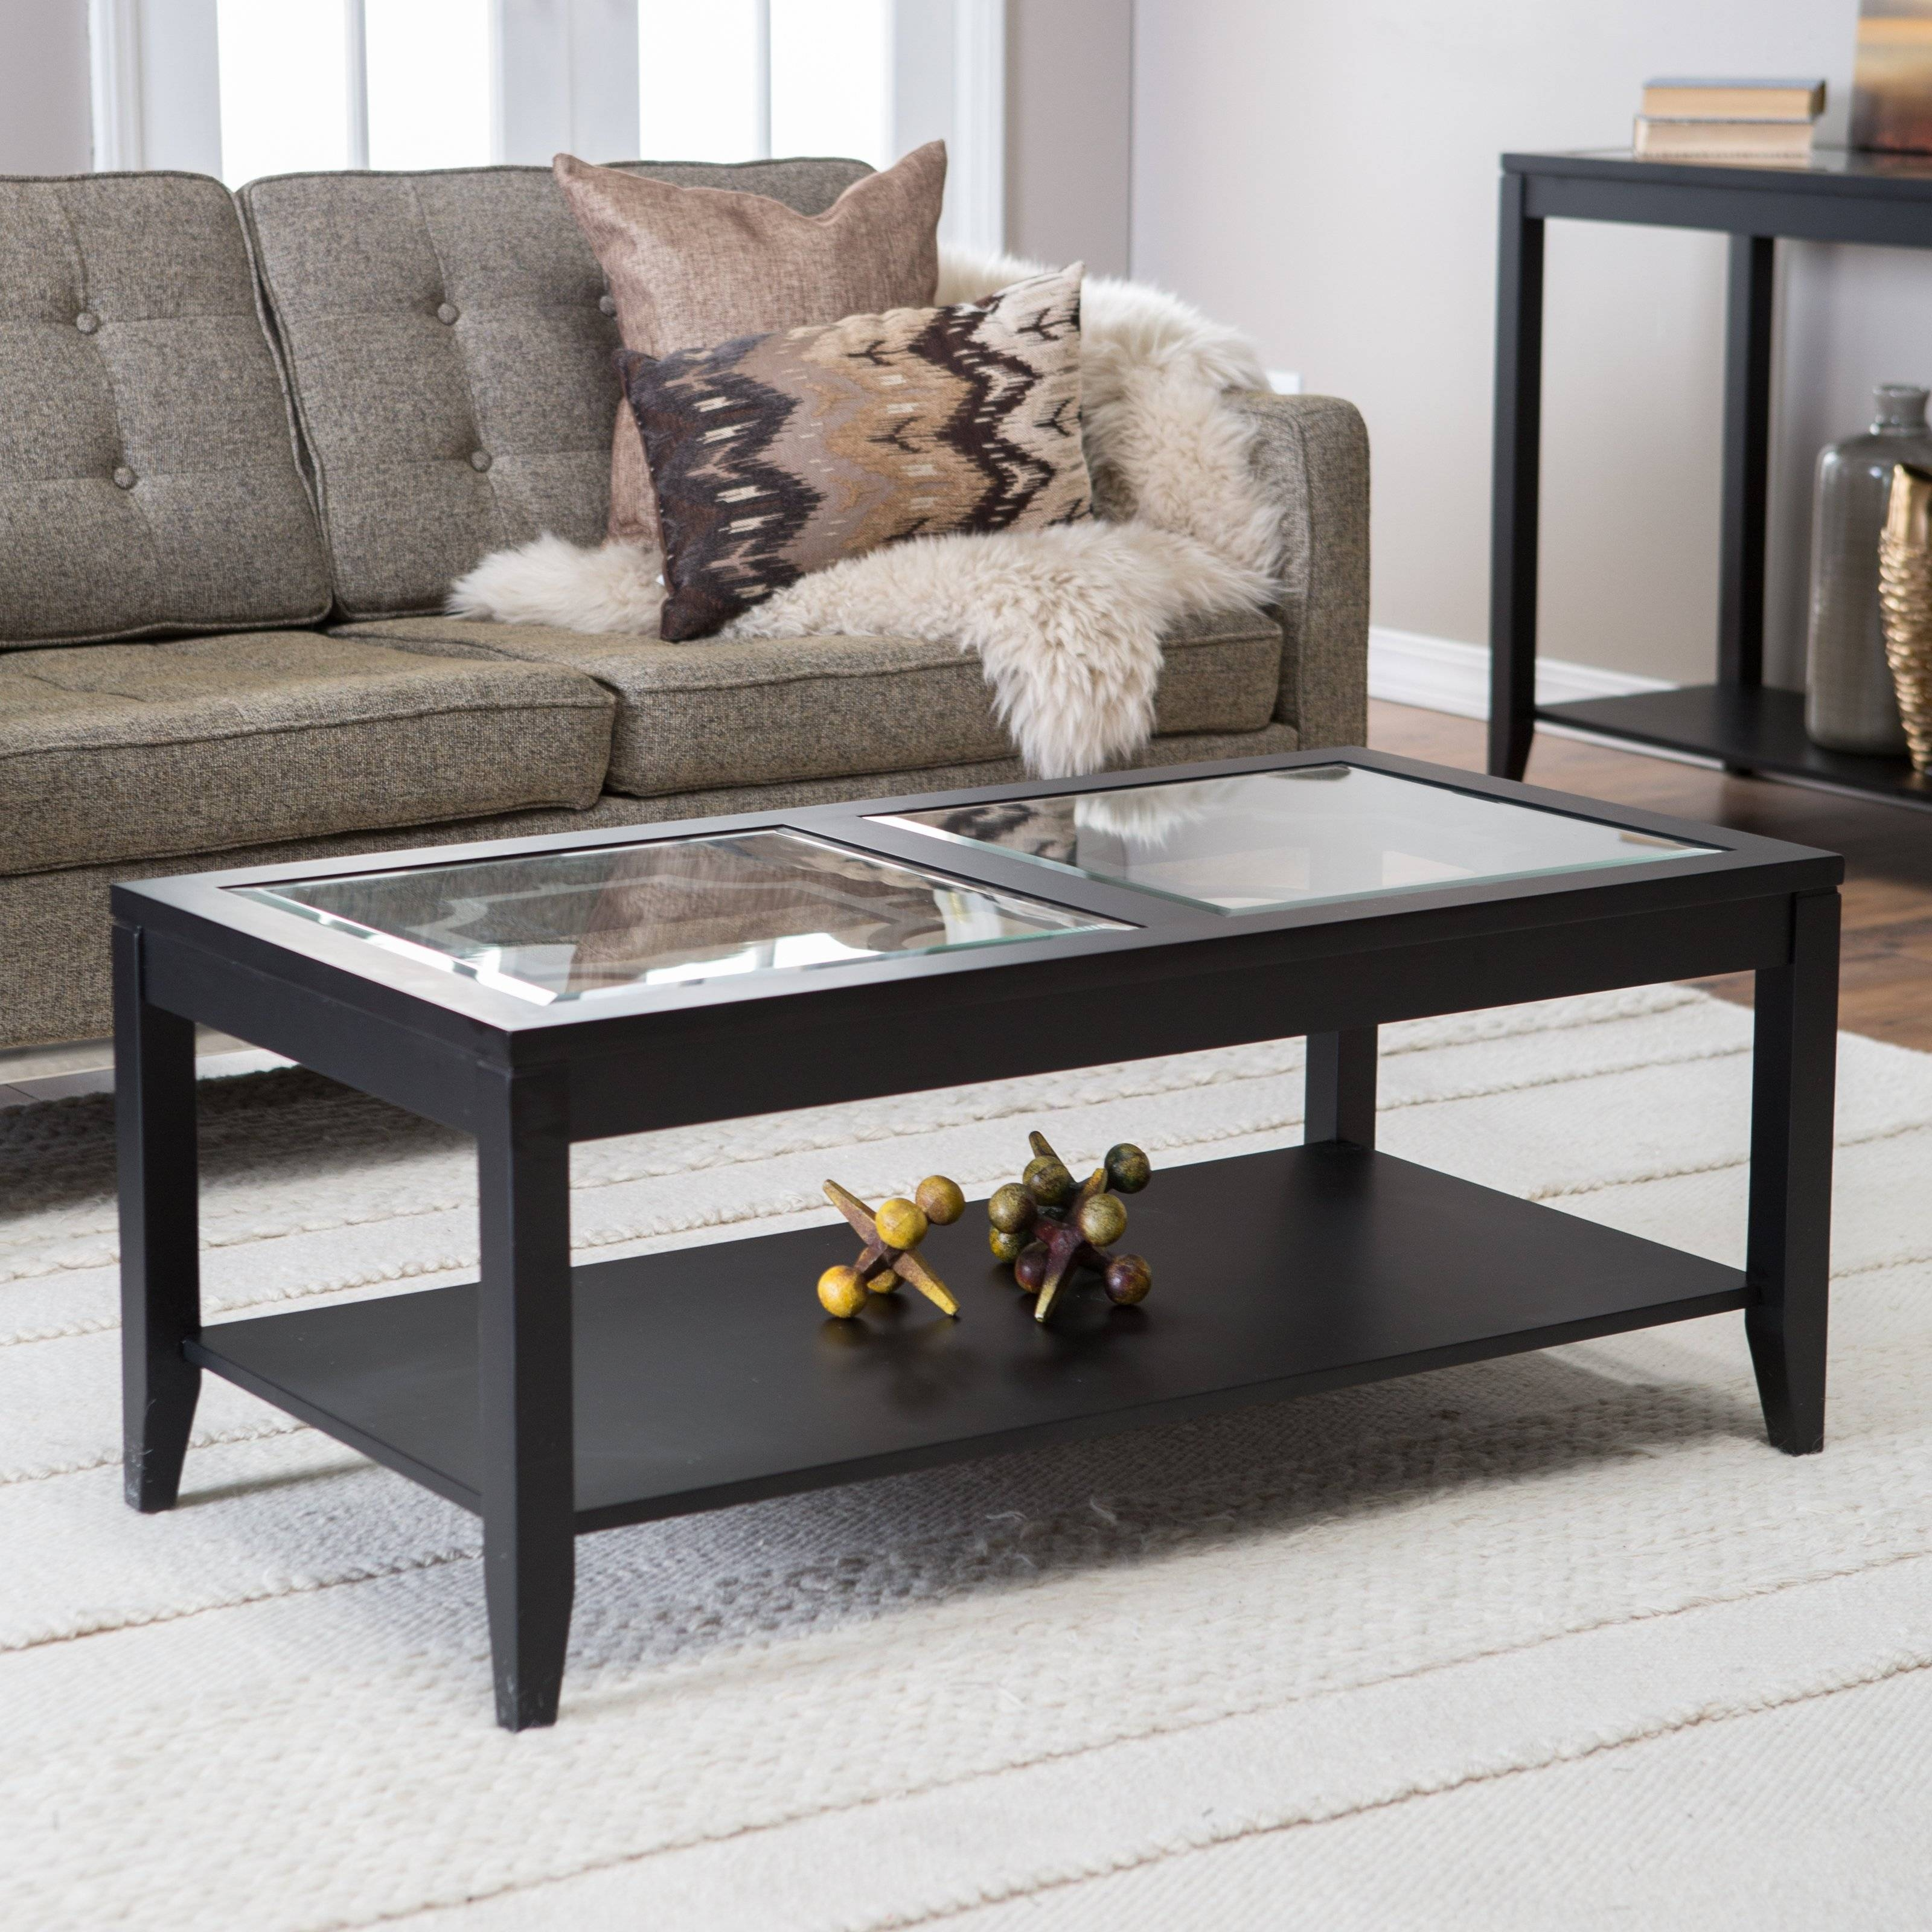 Hodedah Glass Rectangle Coffee Table, Black - Walmart with Large Rectangular Coffee Tables (Image 16 of 30)